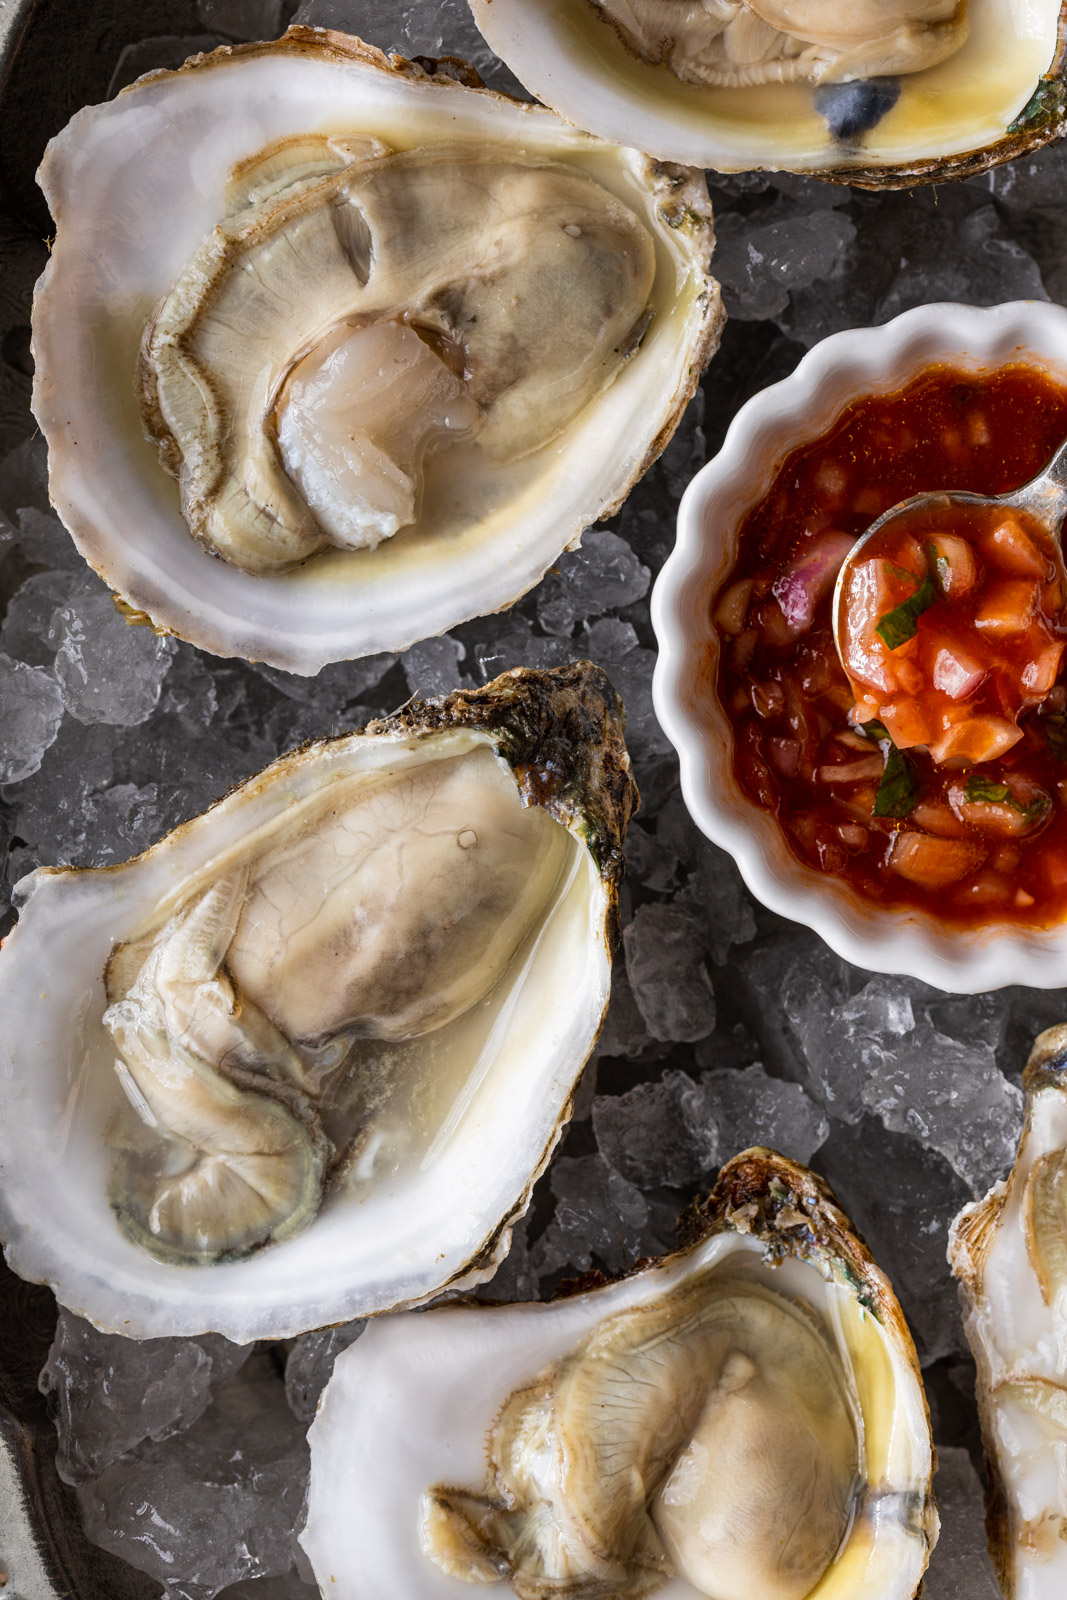 Zesty chili oyster sauce